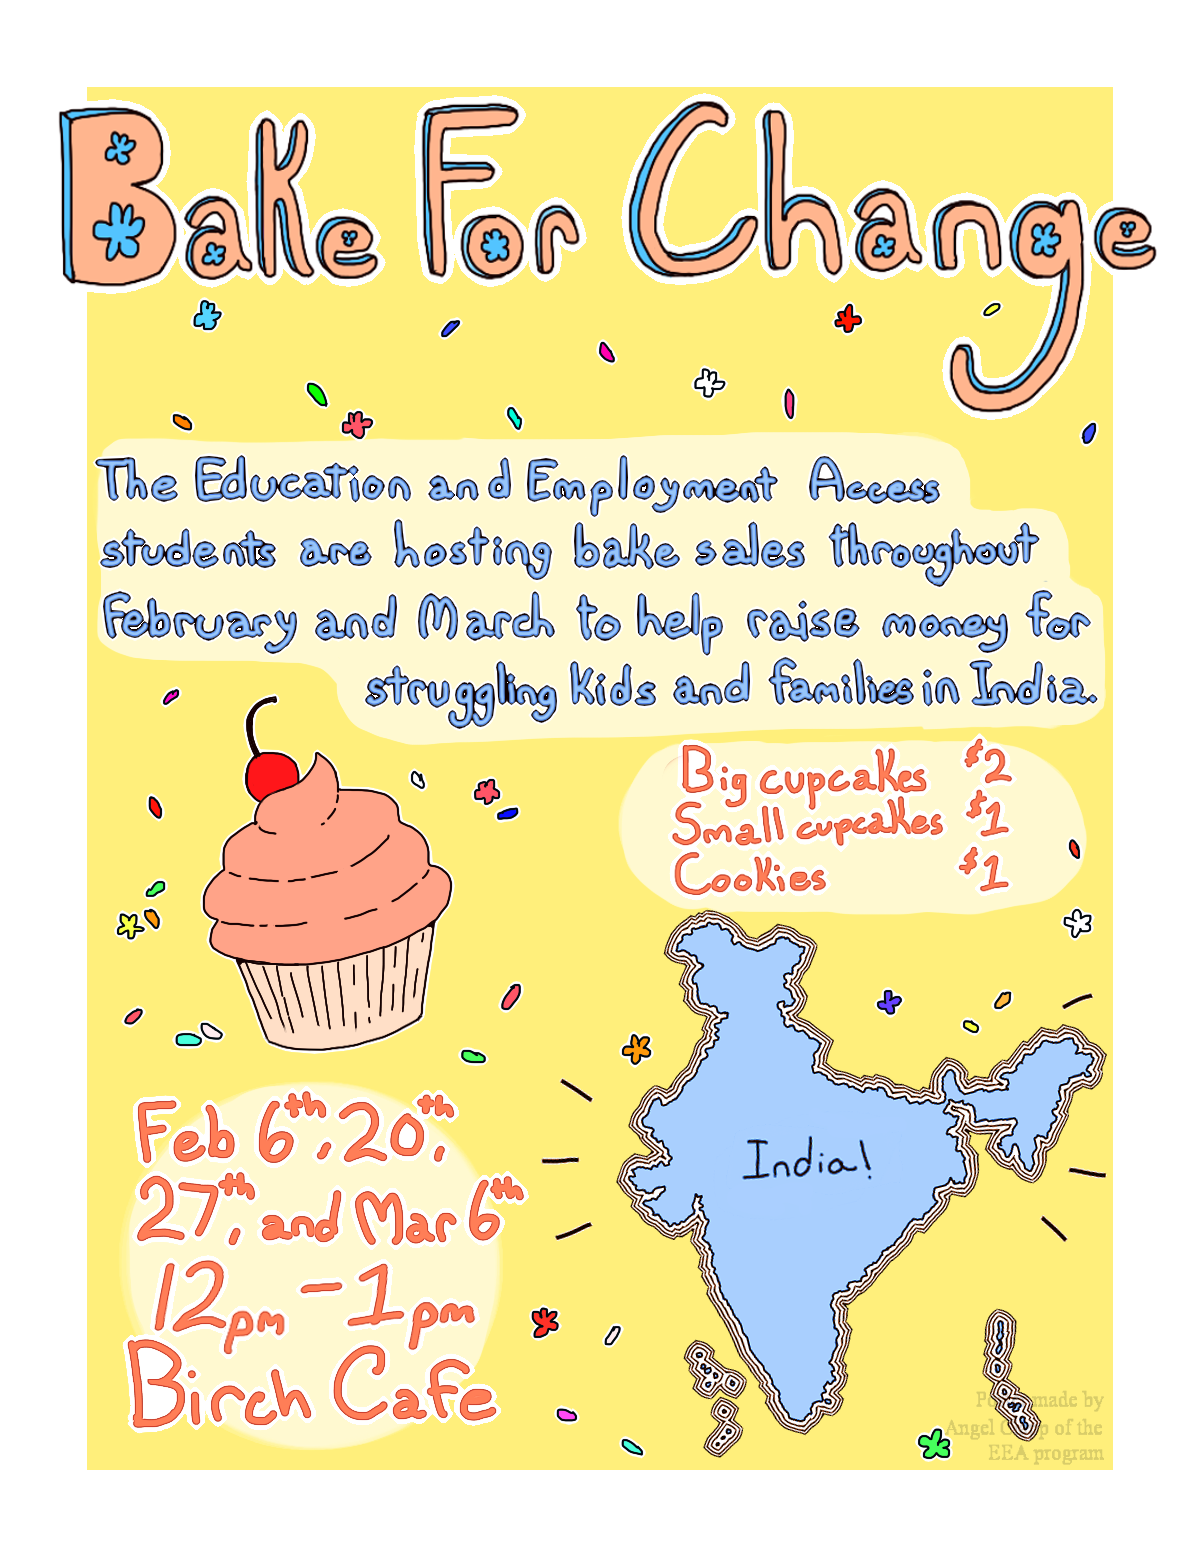 Bake For Change. The Education and Employment Access students are hosting bake sales throughout February and March to help raise money for struggling kids and families in India.